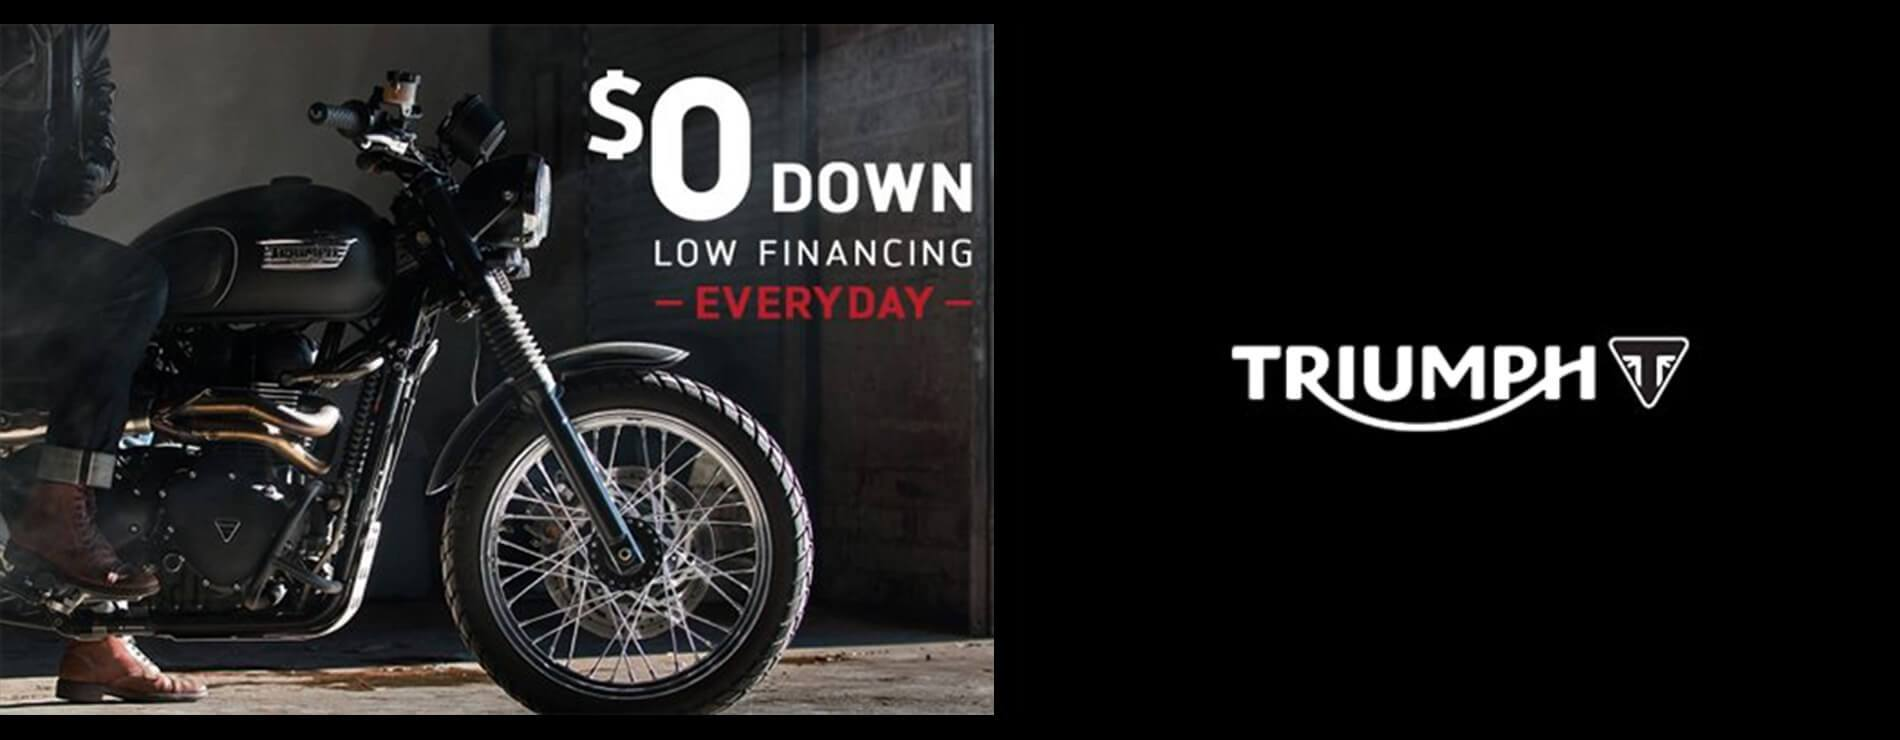 Triumph-0-down-financing-1900x740